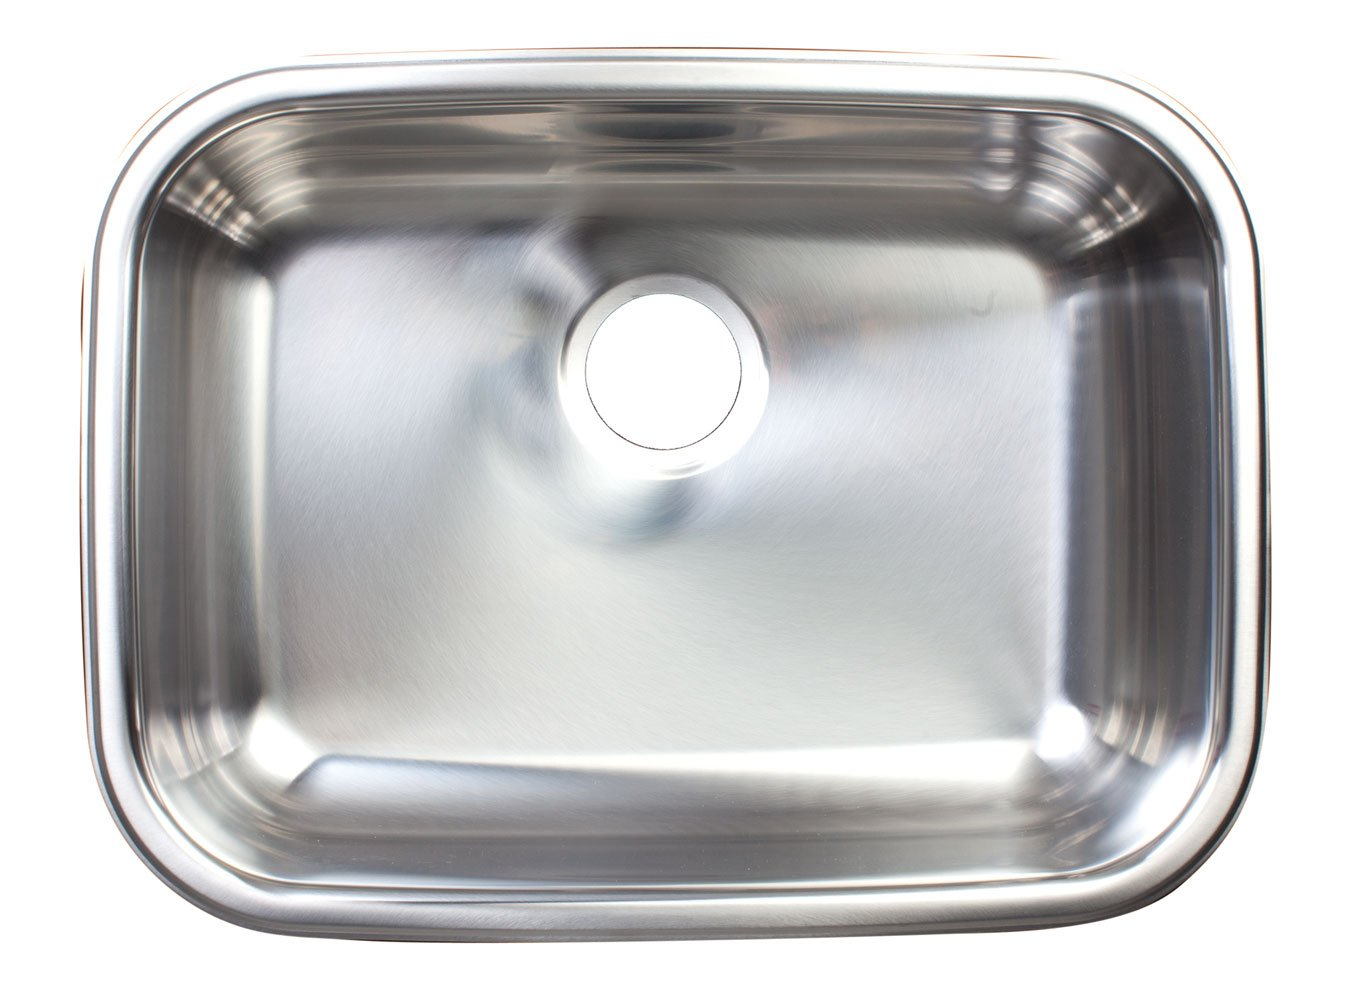 One Bowl Stainless Steel Kitchen Sinks Kindred fsug100 18bx single bowl under mount kitchen sink stainless kindred fsug100 18bx single bowl under mount kitchen sink stainless steel franke undermount sink amazon workwithnaturefo